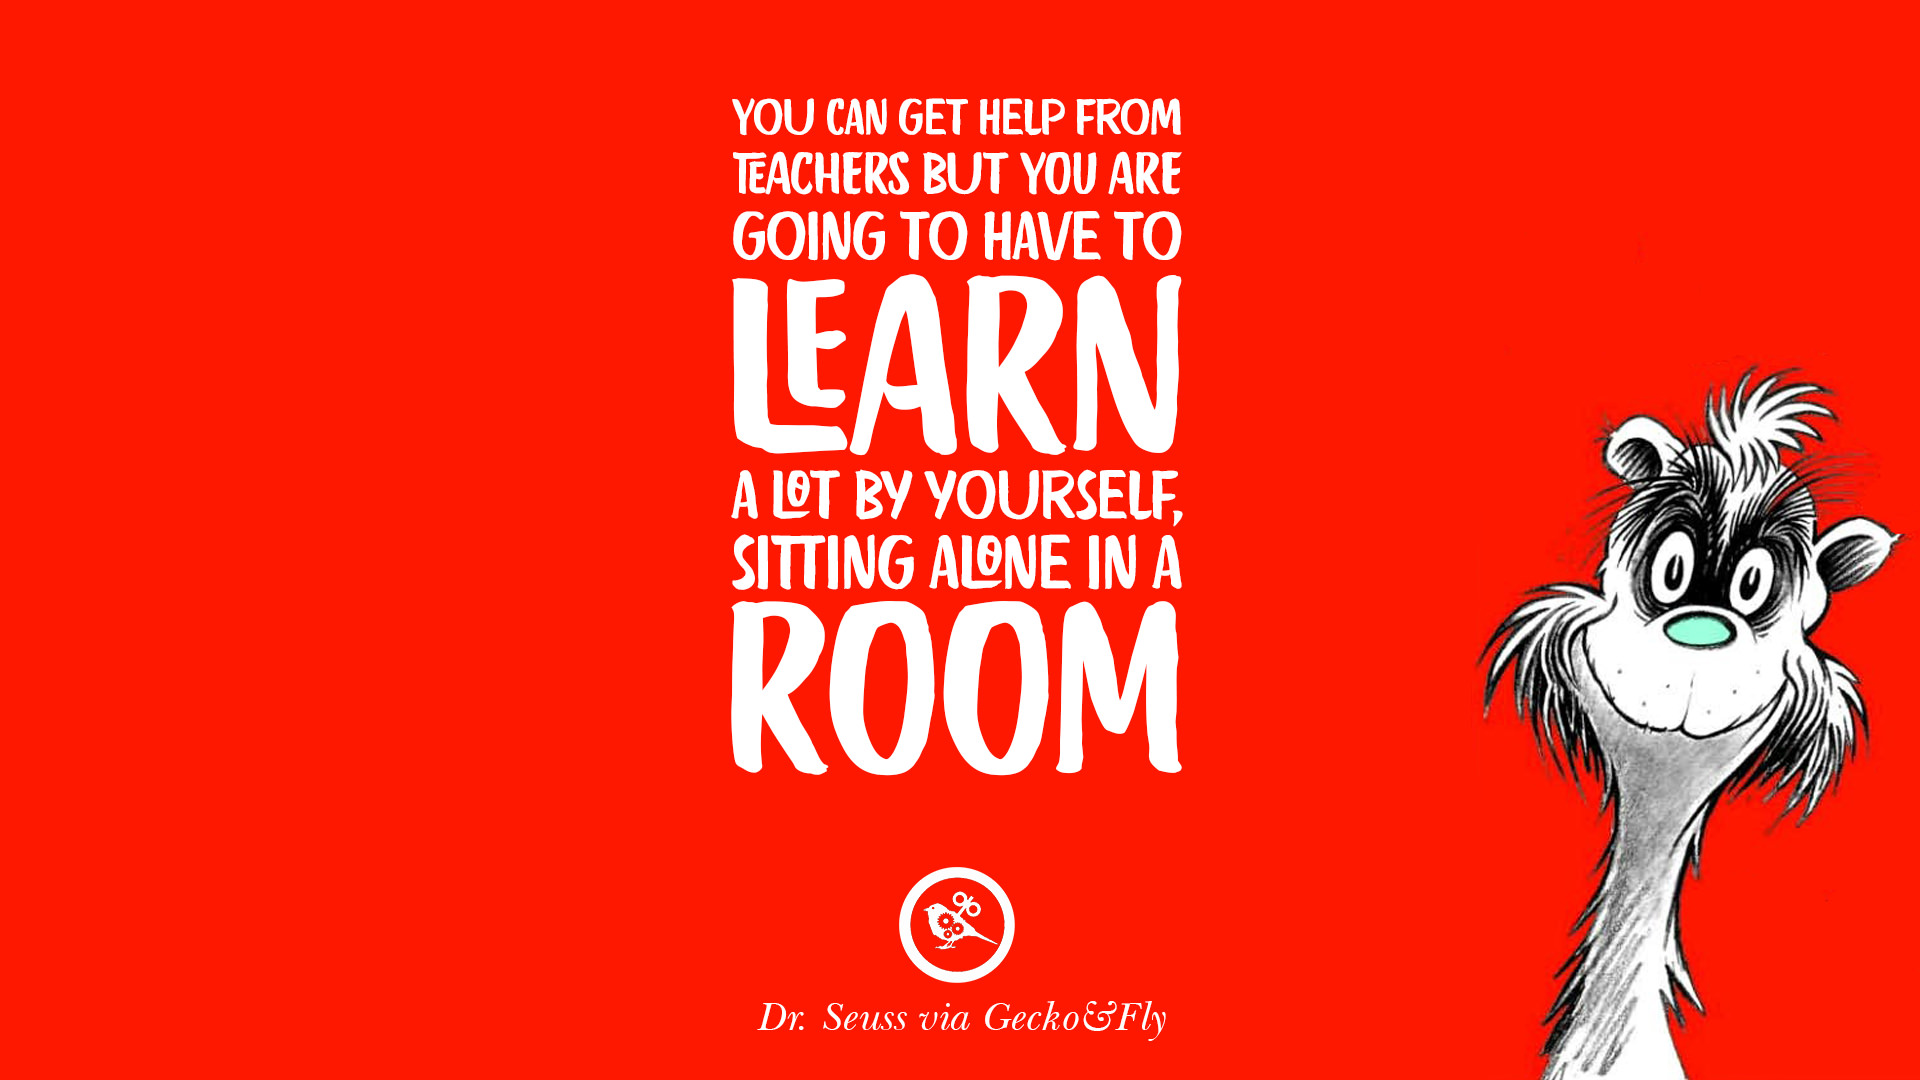 Quotes About Love Dr Seuss : ... have to learn a lot by yourself, sitting alone in a room. Dr Seuss